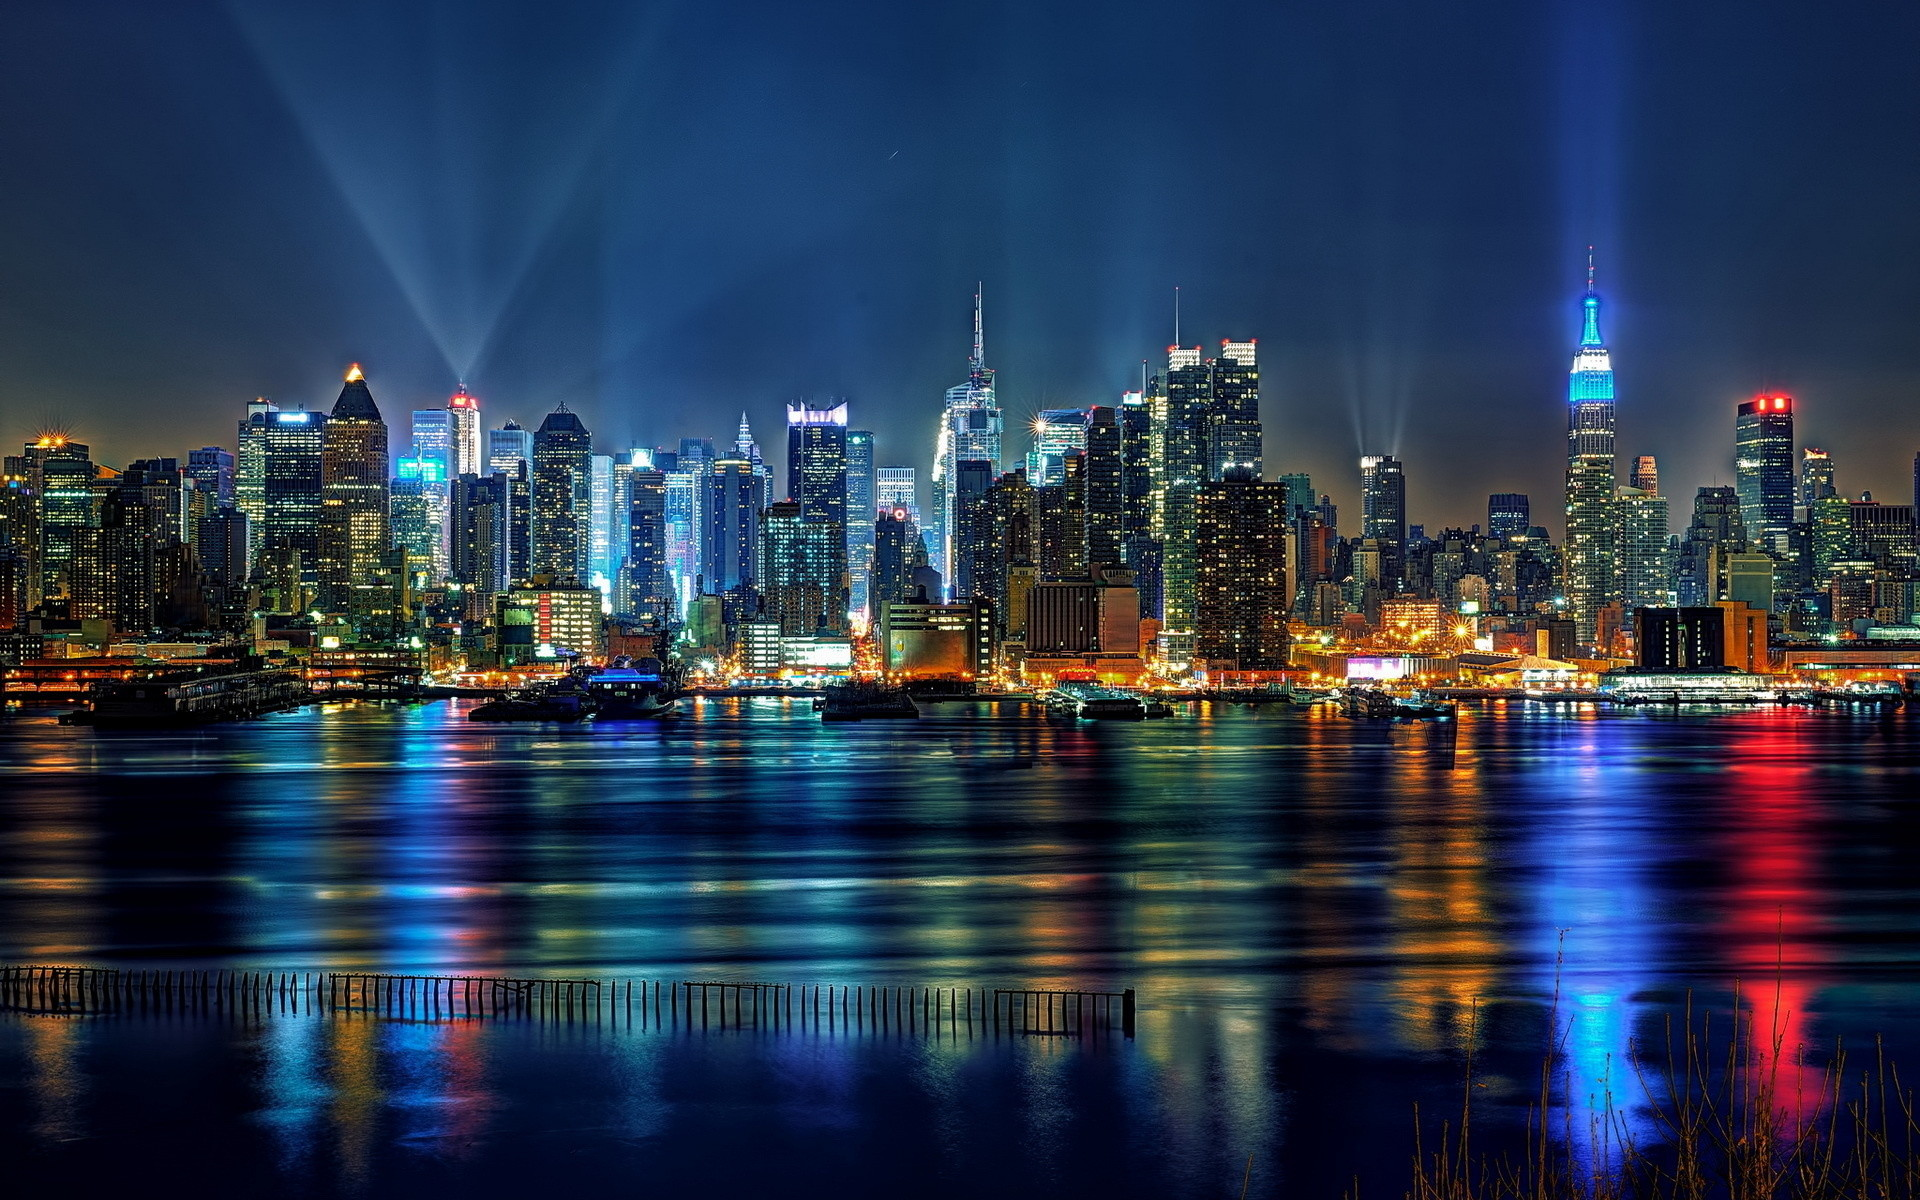 1920x1200 New York Computer Wallpapers, Desktop Backgrounds |  | ID .